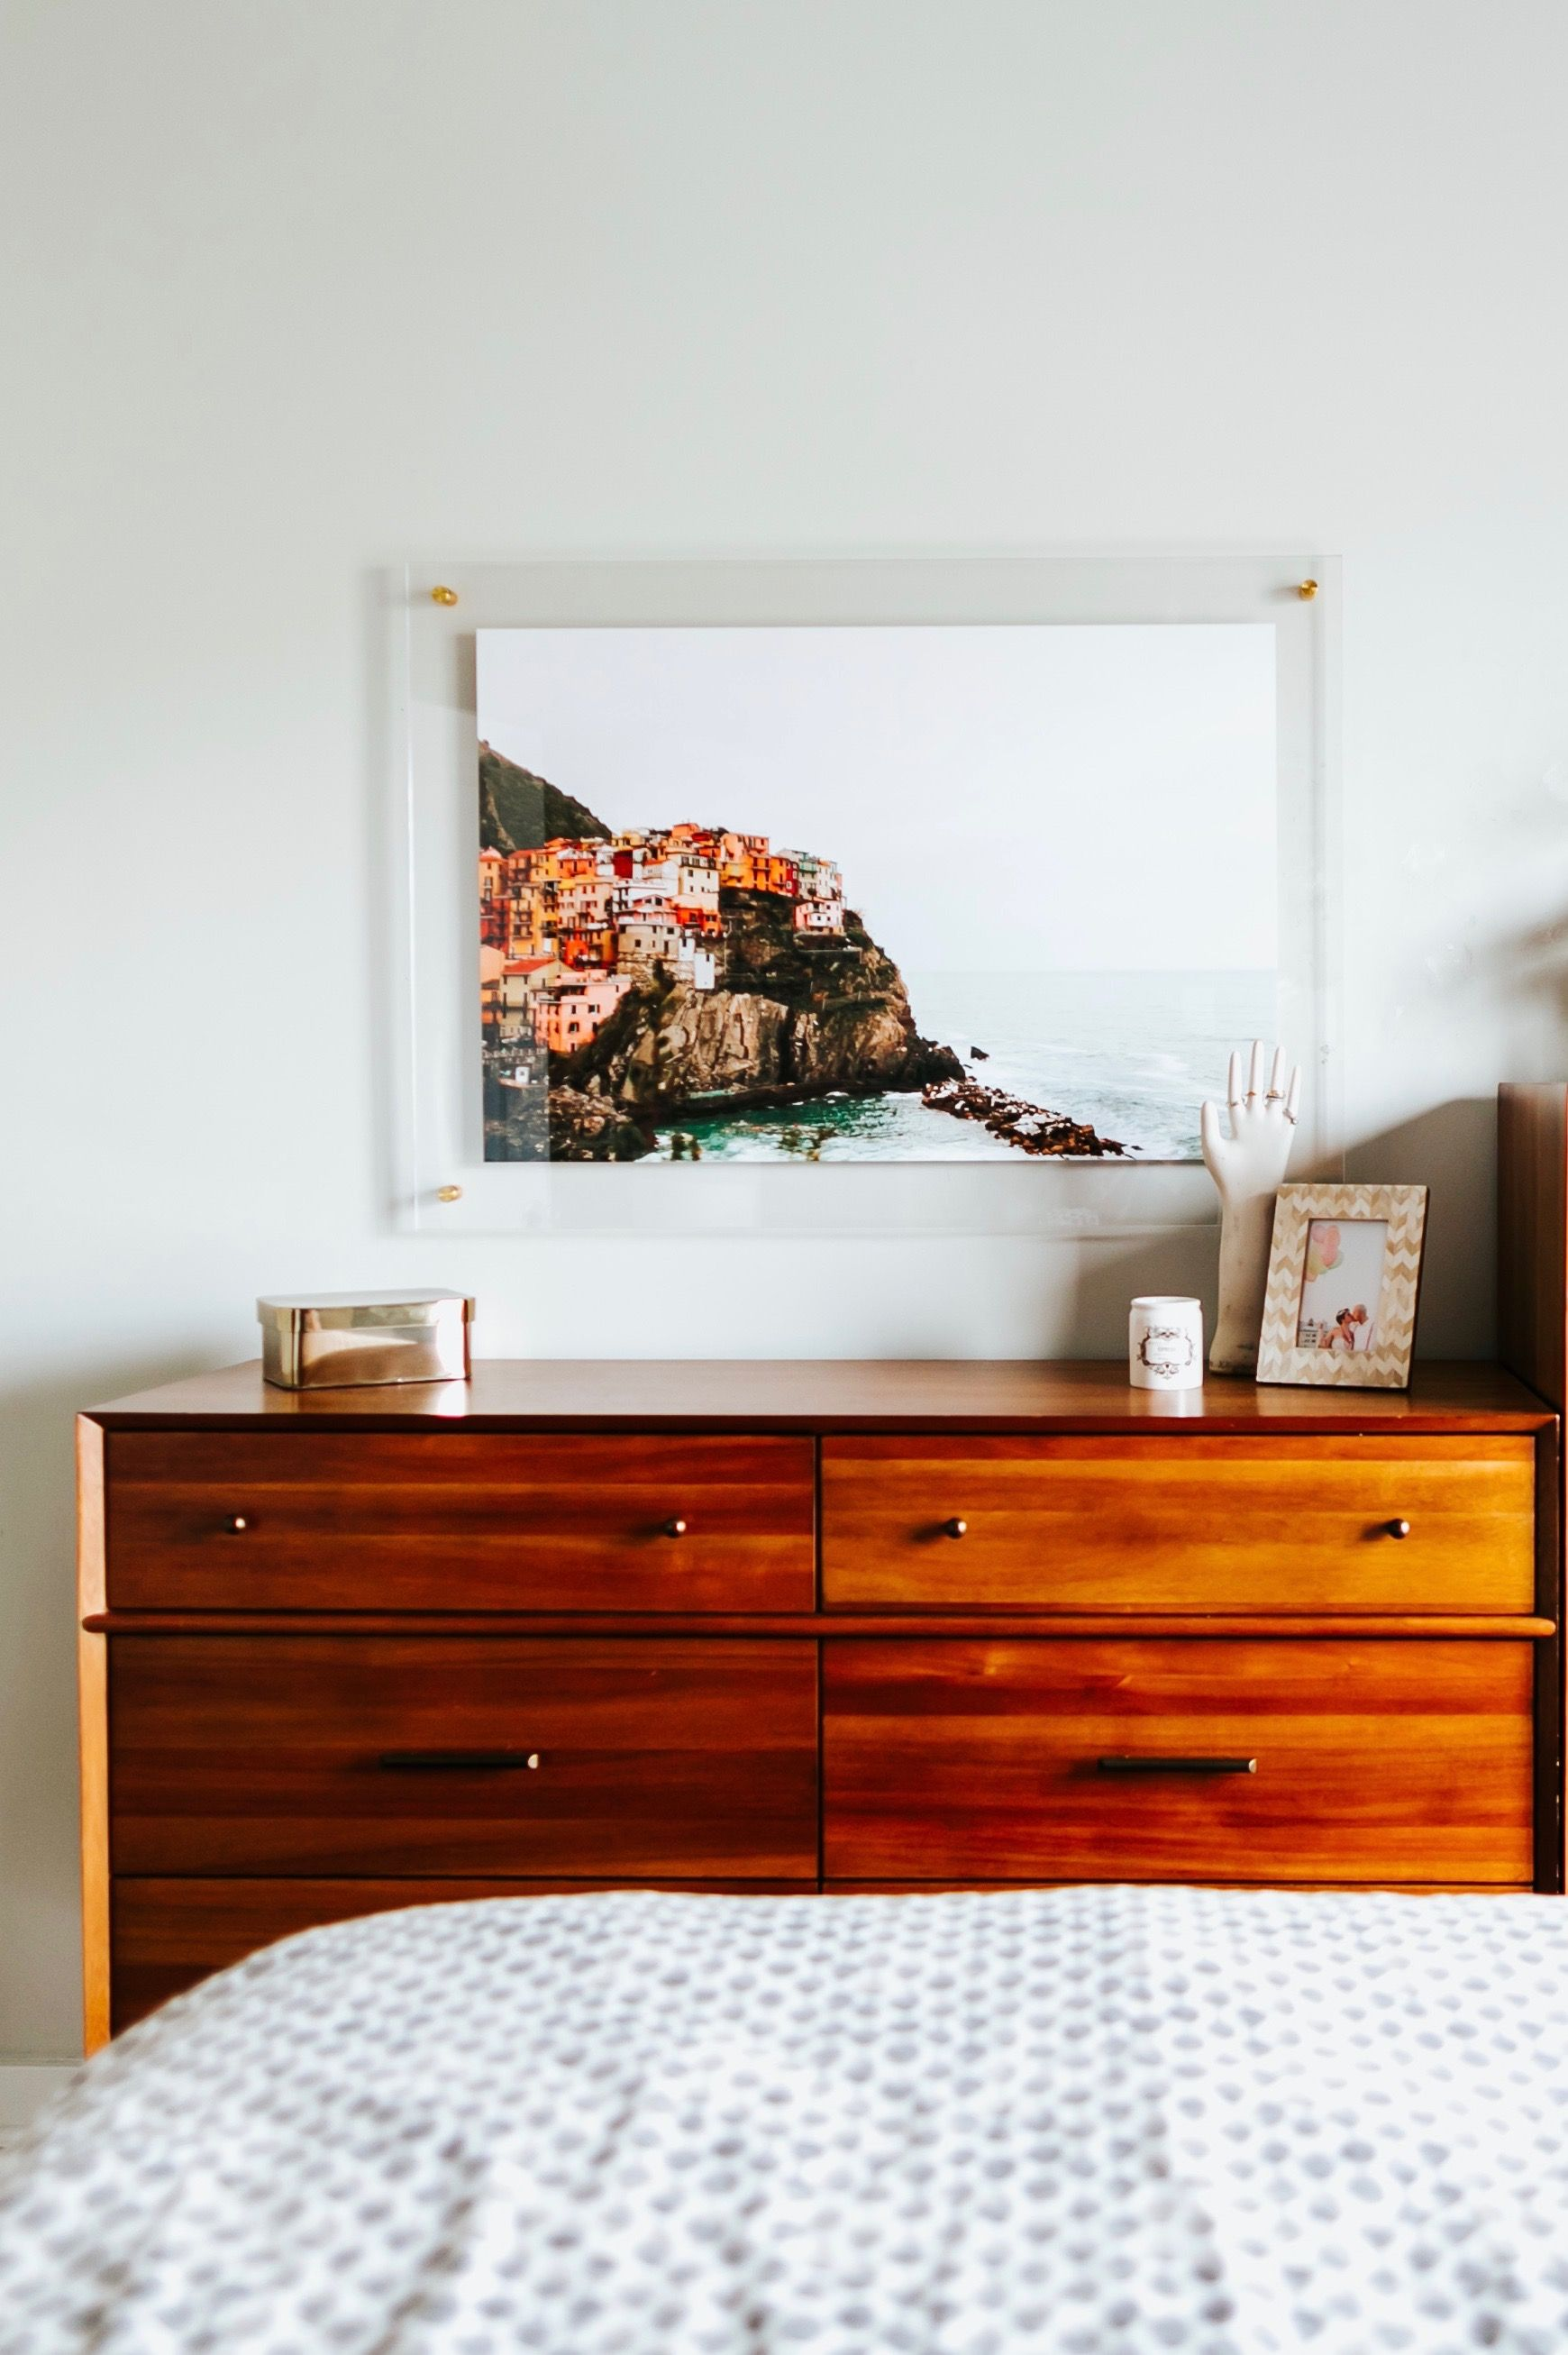 Bedroom Inspiration Brought To You By @Jojotastic Create A Frame